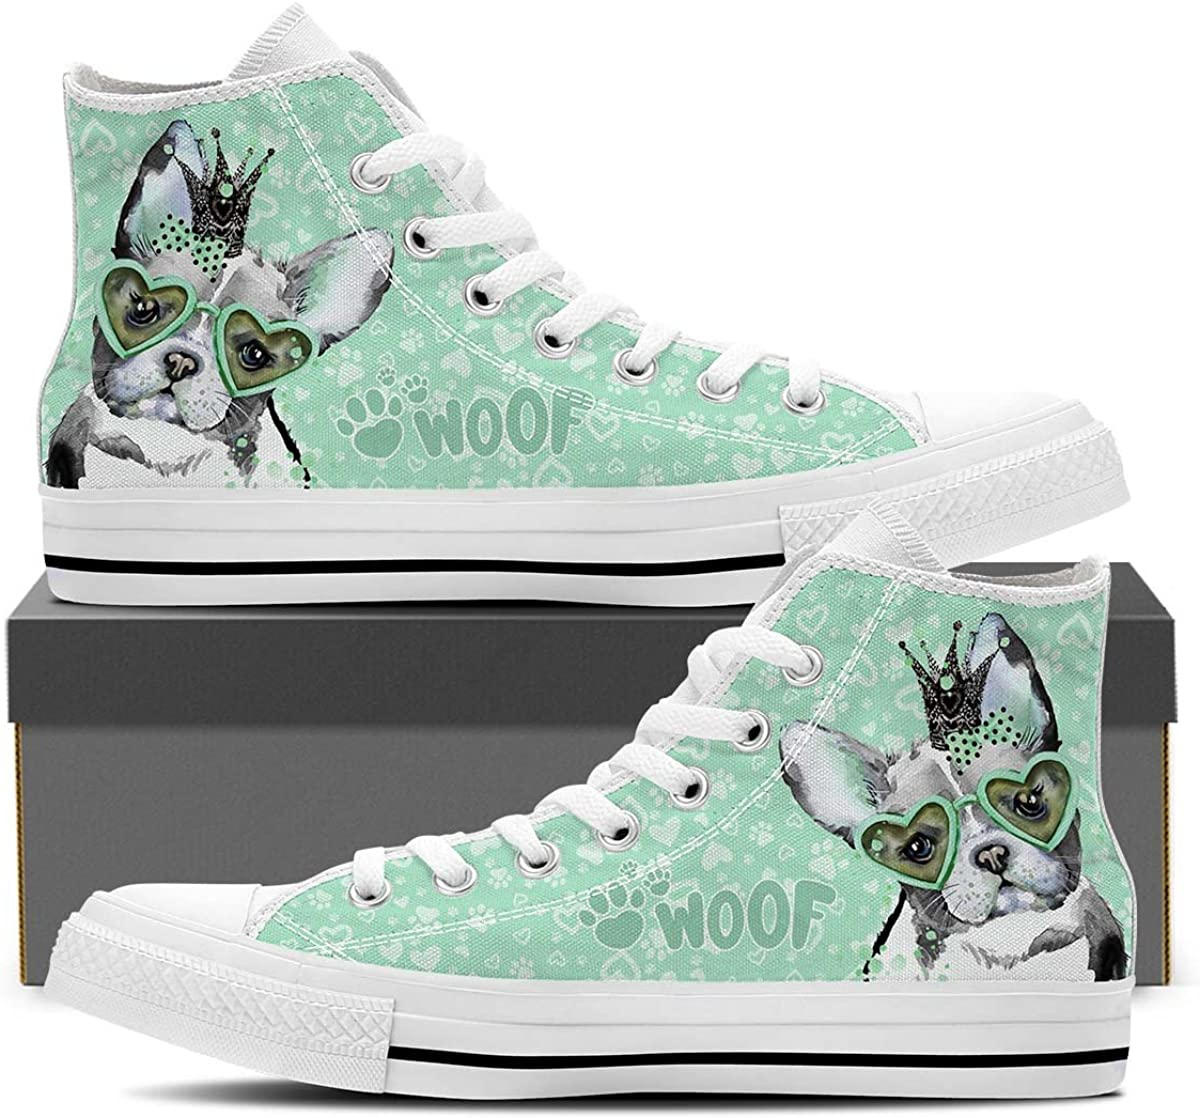 Womens High Top Sneakers in Black French Bulldog